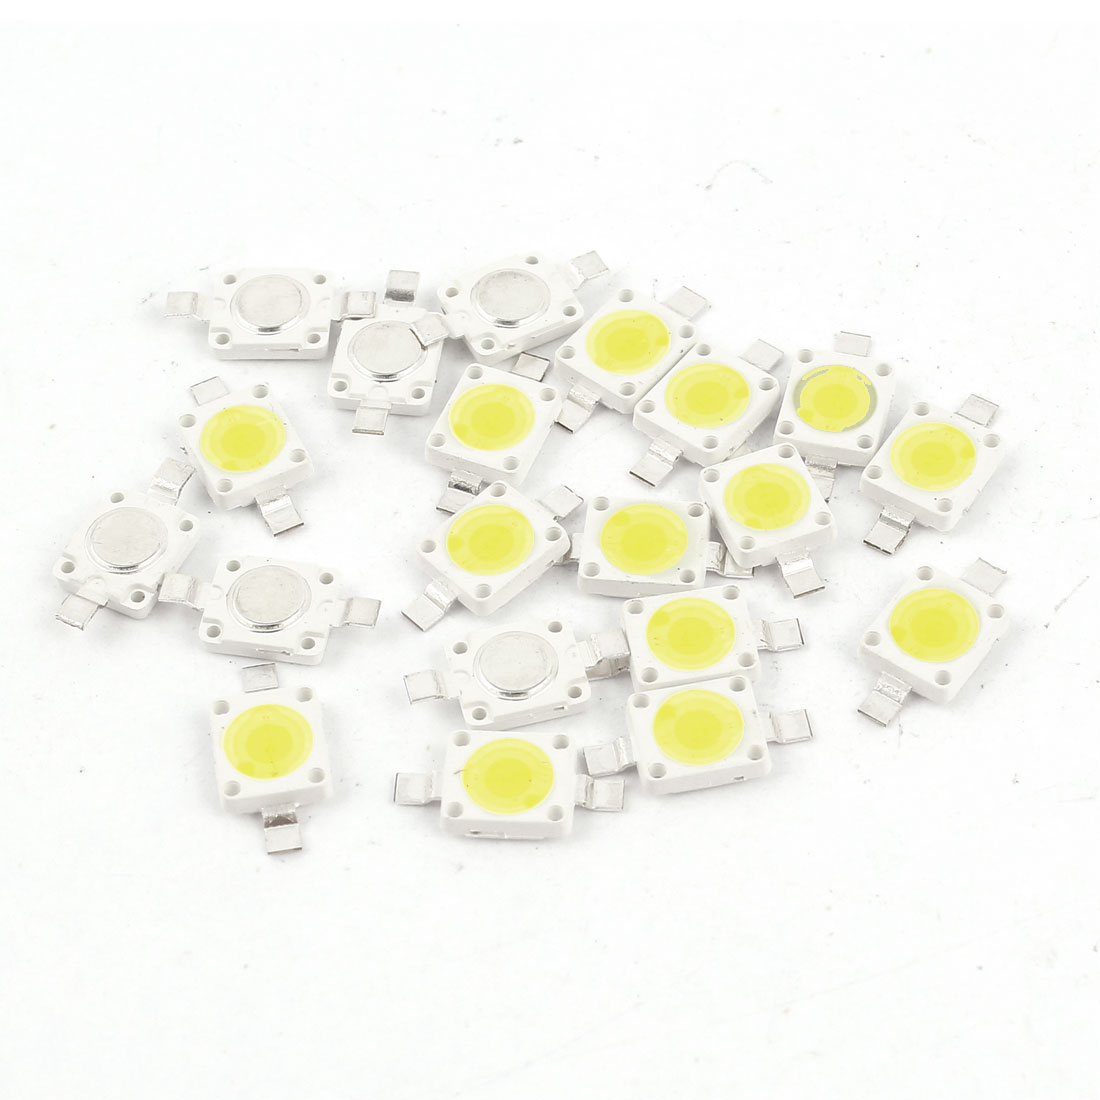 3.0-3.6V 350mA 1W Pure White High Power LED Bead SMD 6070 Chip Lamp Light 20pcs